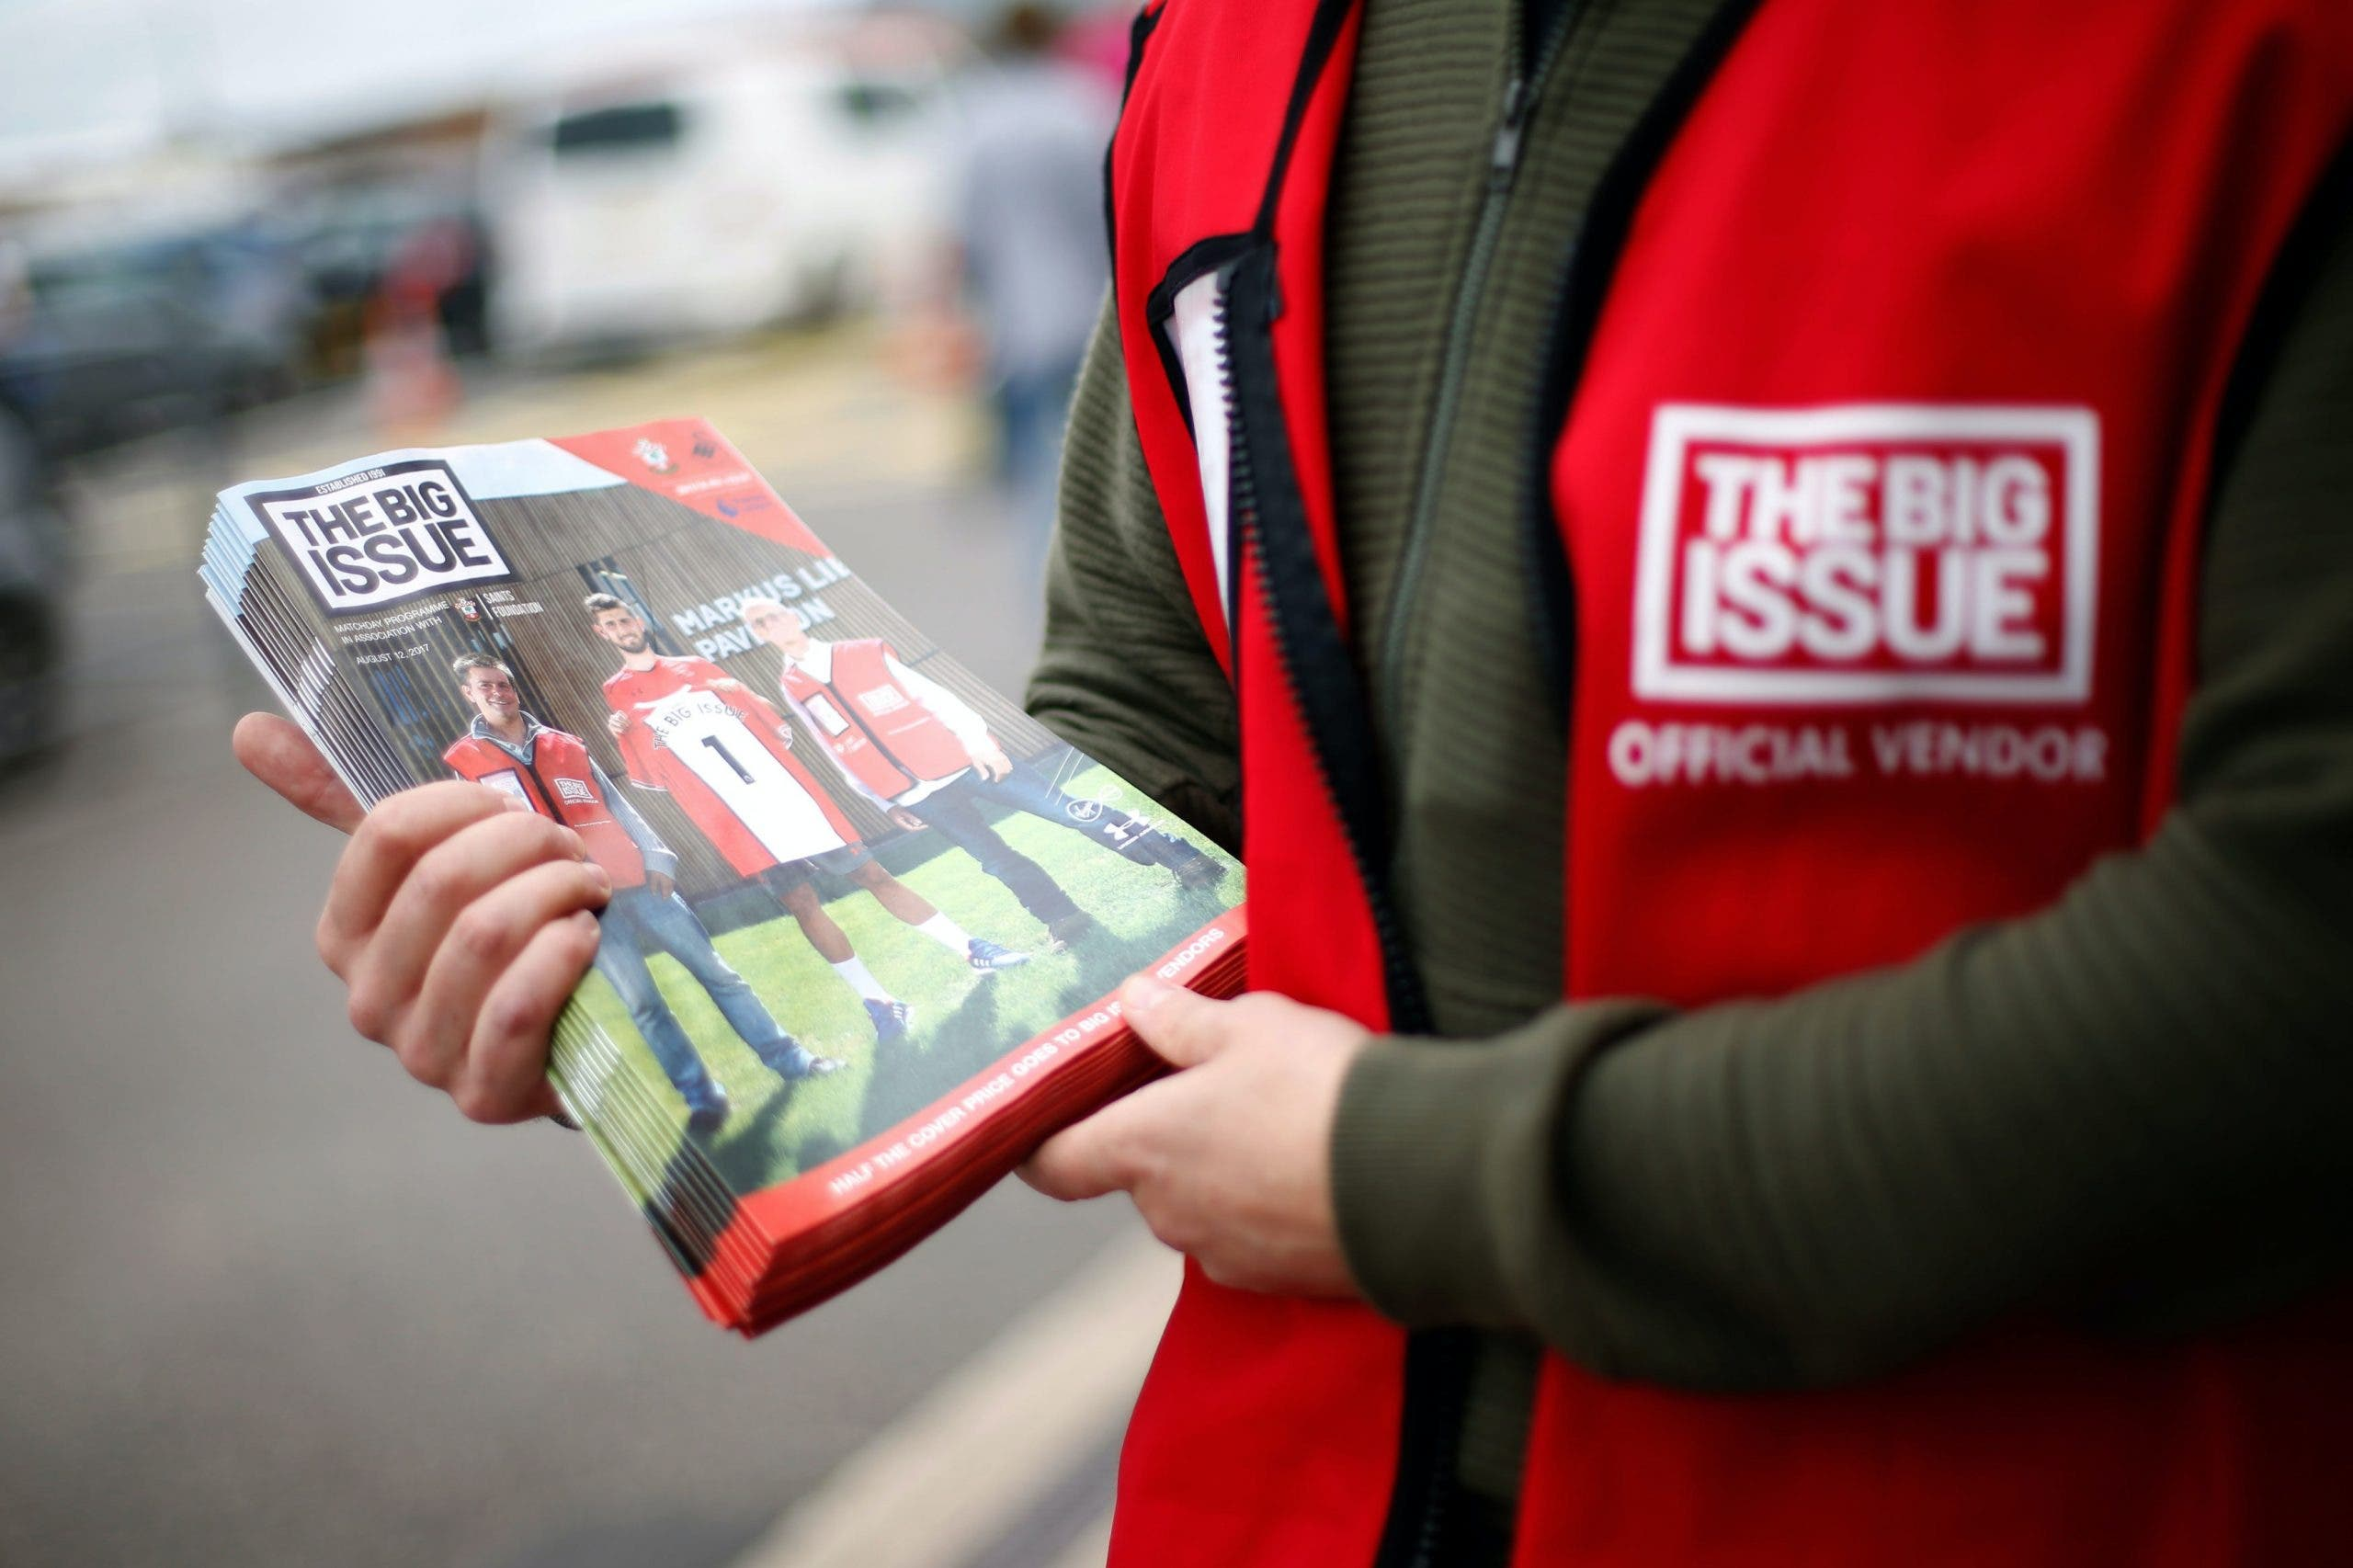 Big Issue highlights 'life-changing' support as sellers struggle